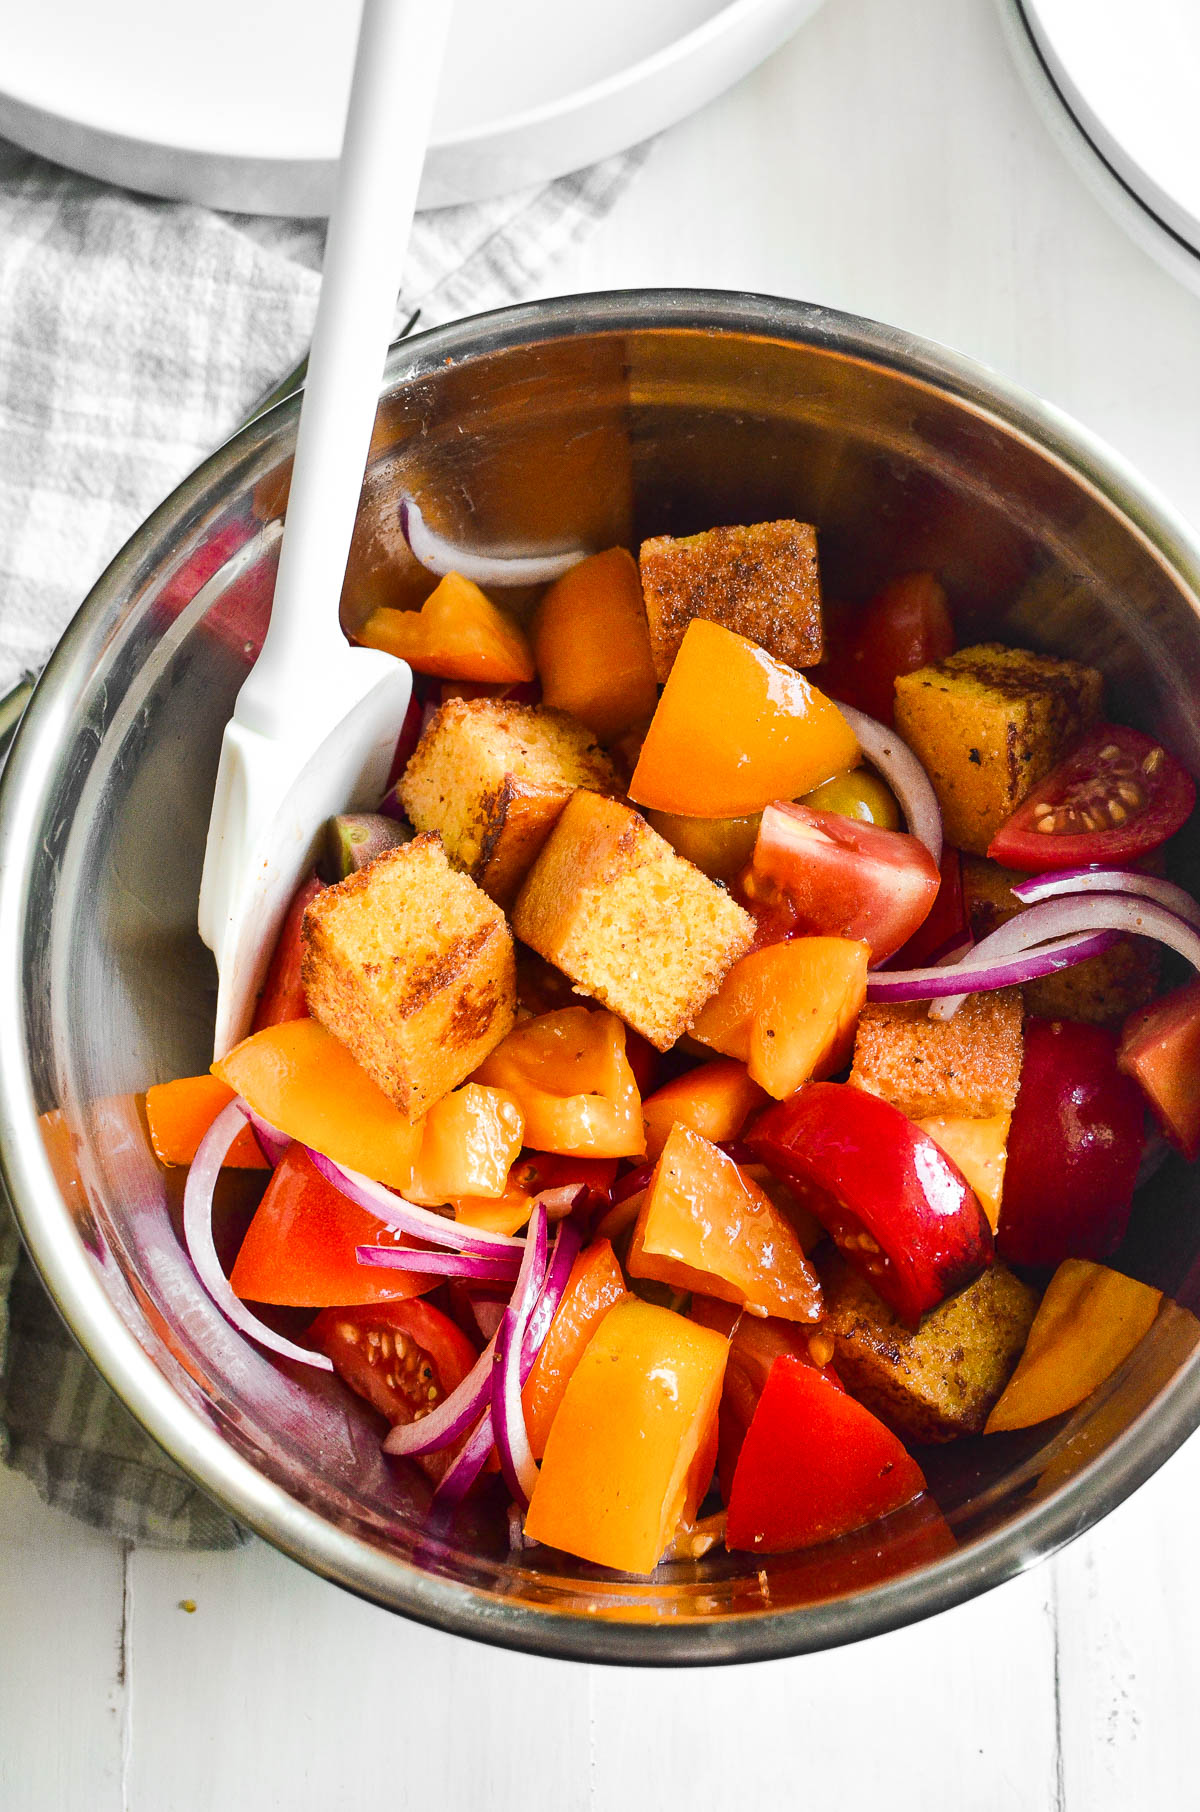 Mixing cornbread panzanella ingredients in a stainless steel mixing bowl with a white spatula.